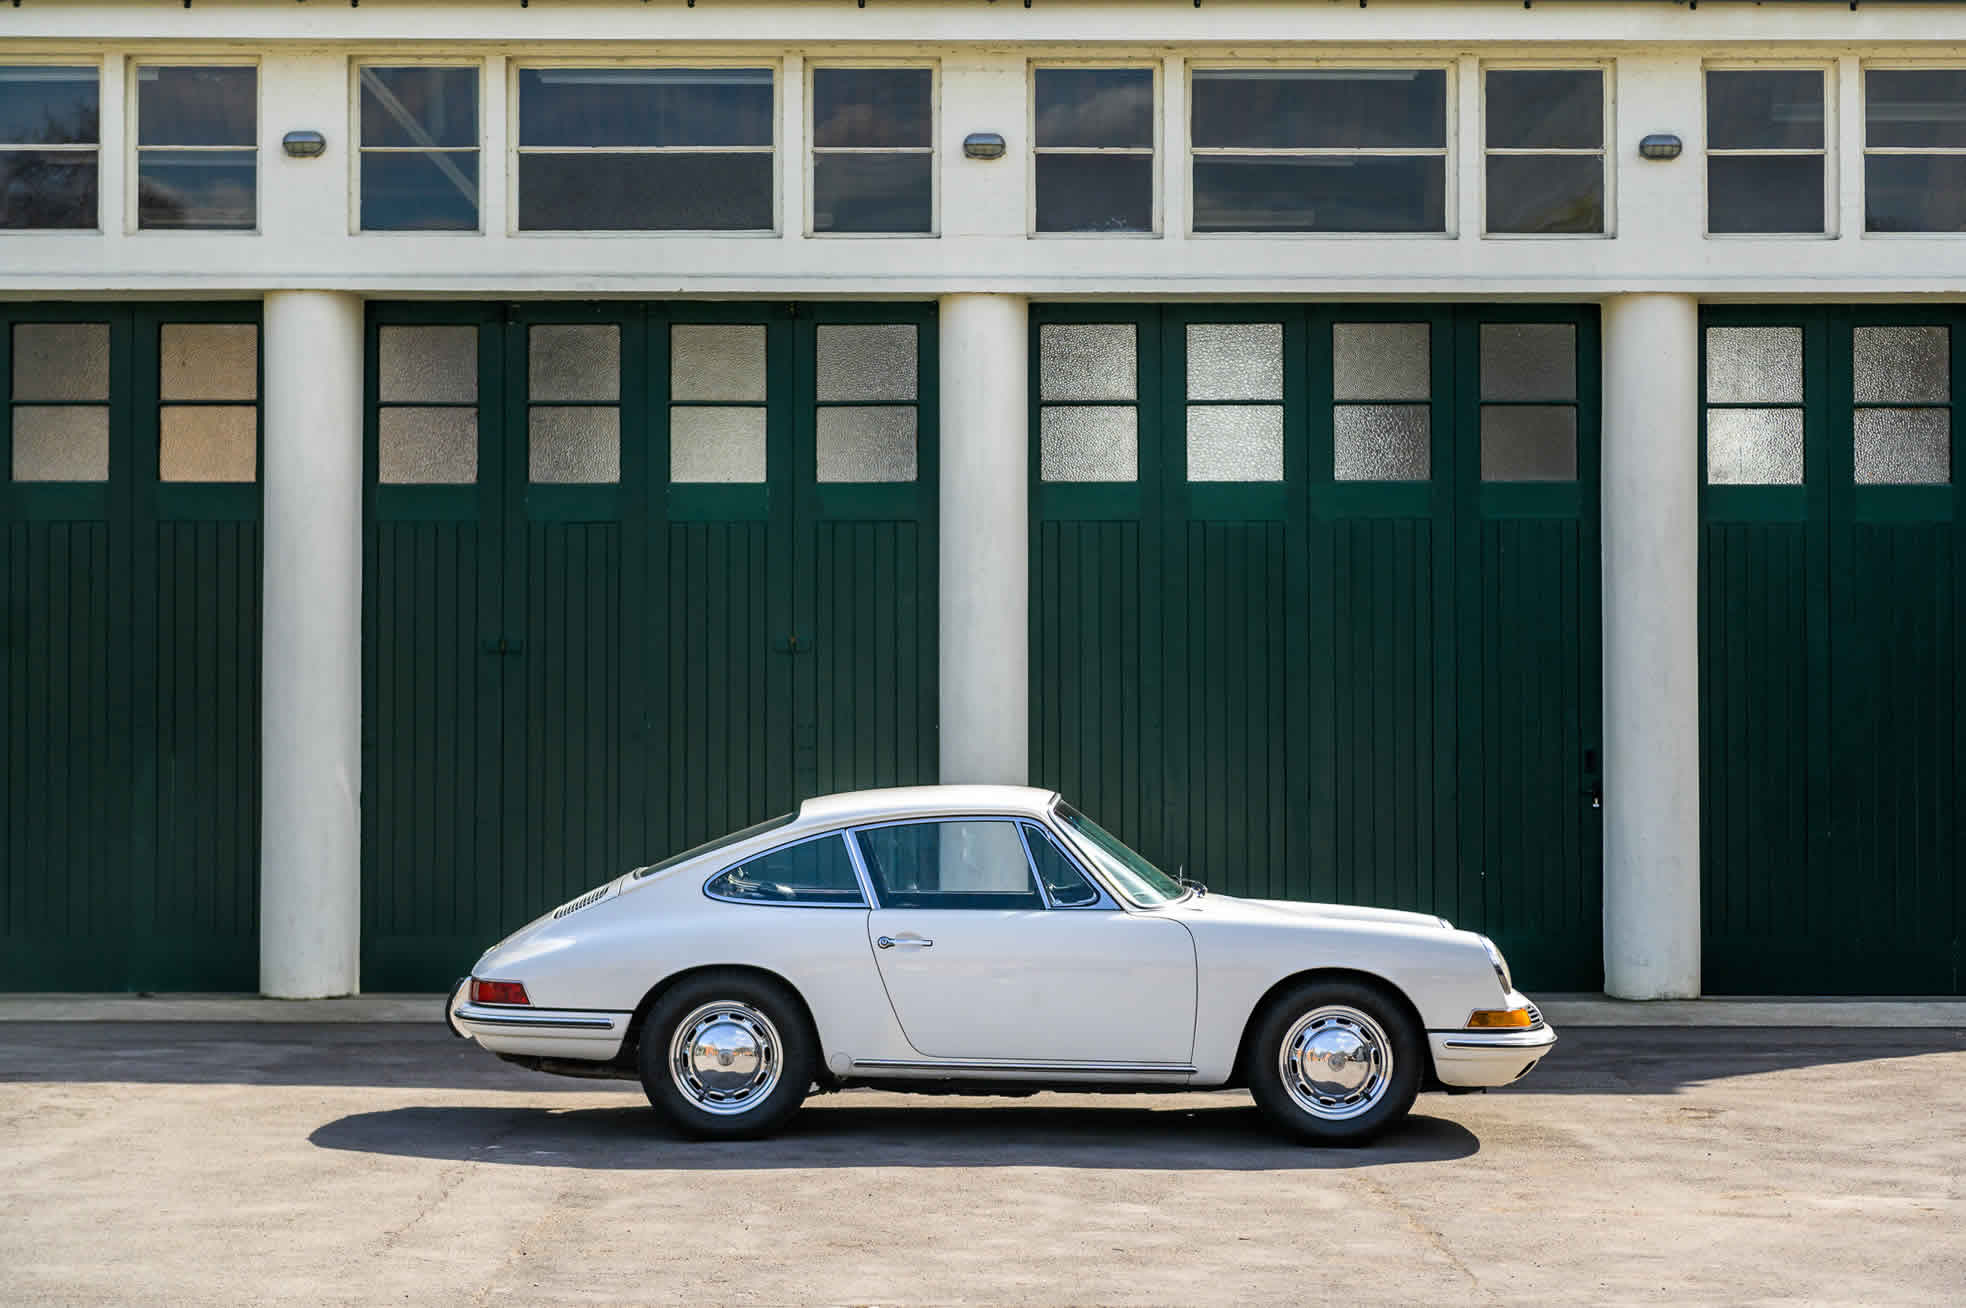 For Sale, 1965 Porsche 911, Sports Purpose